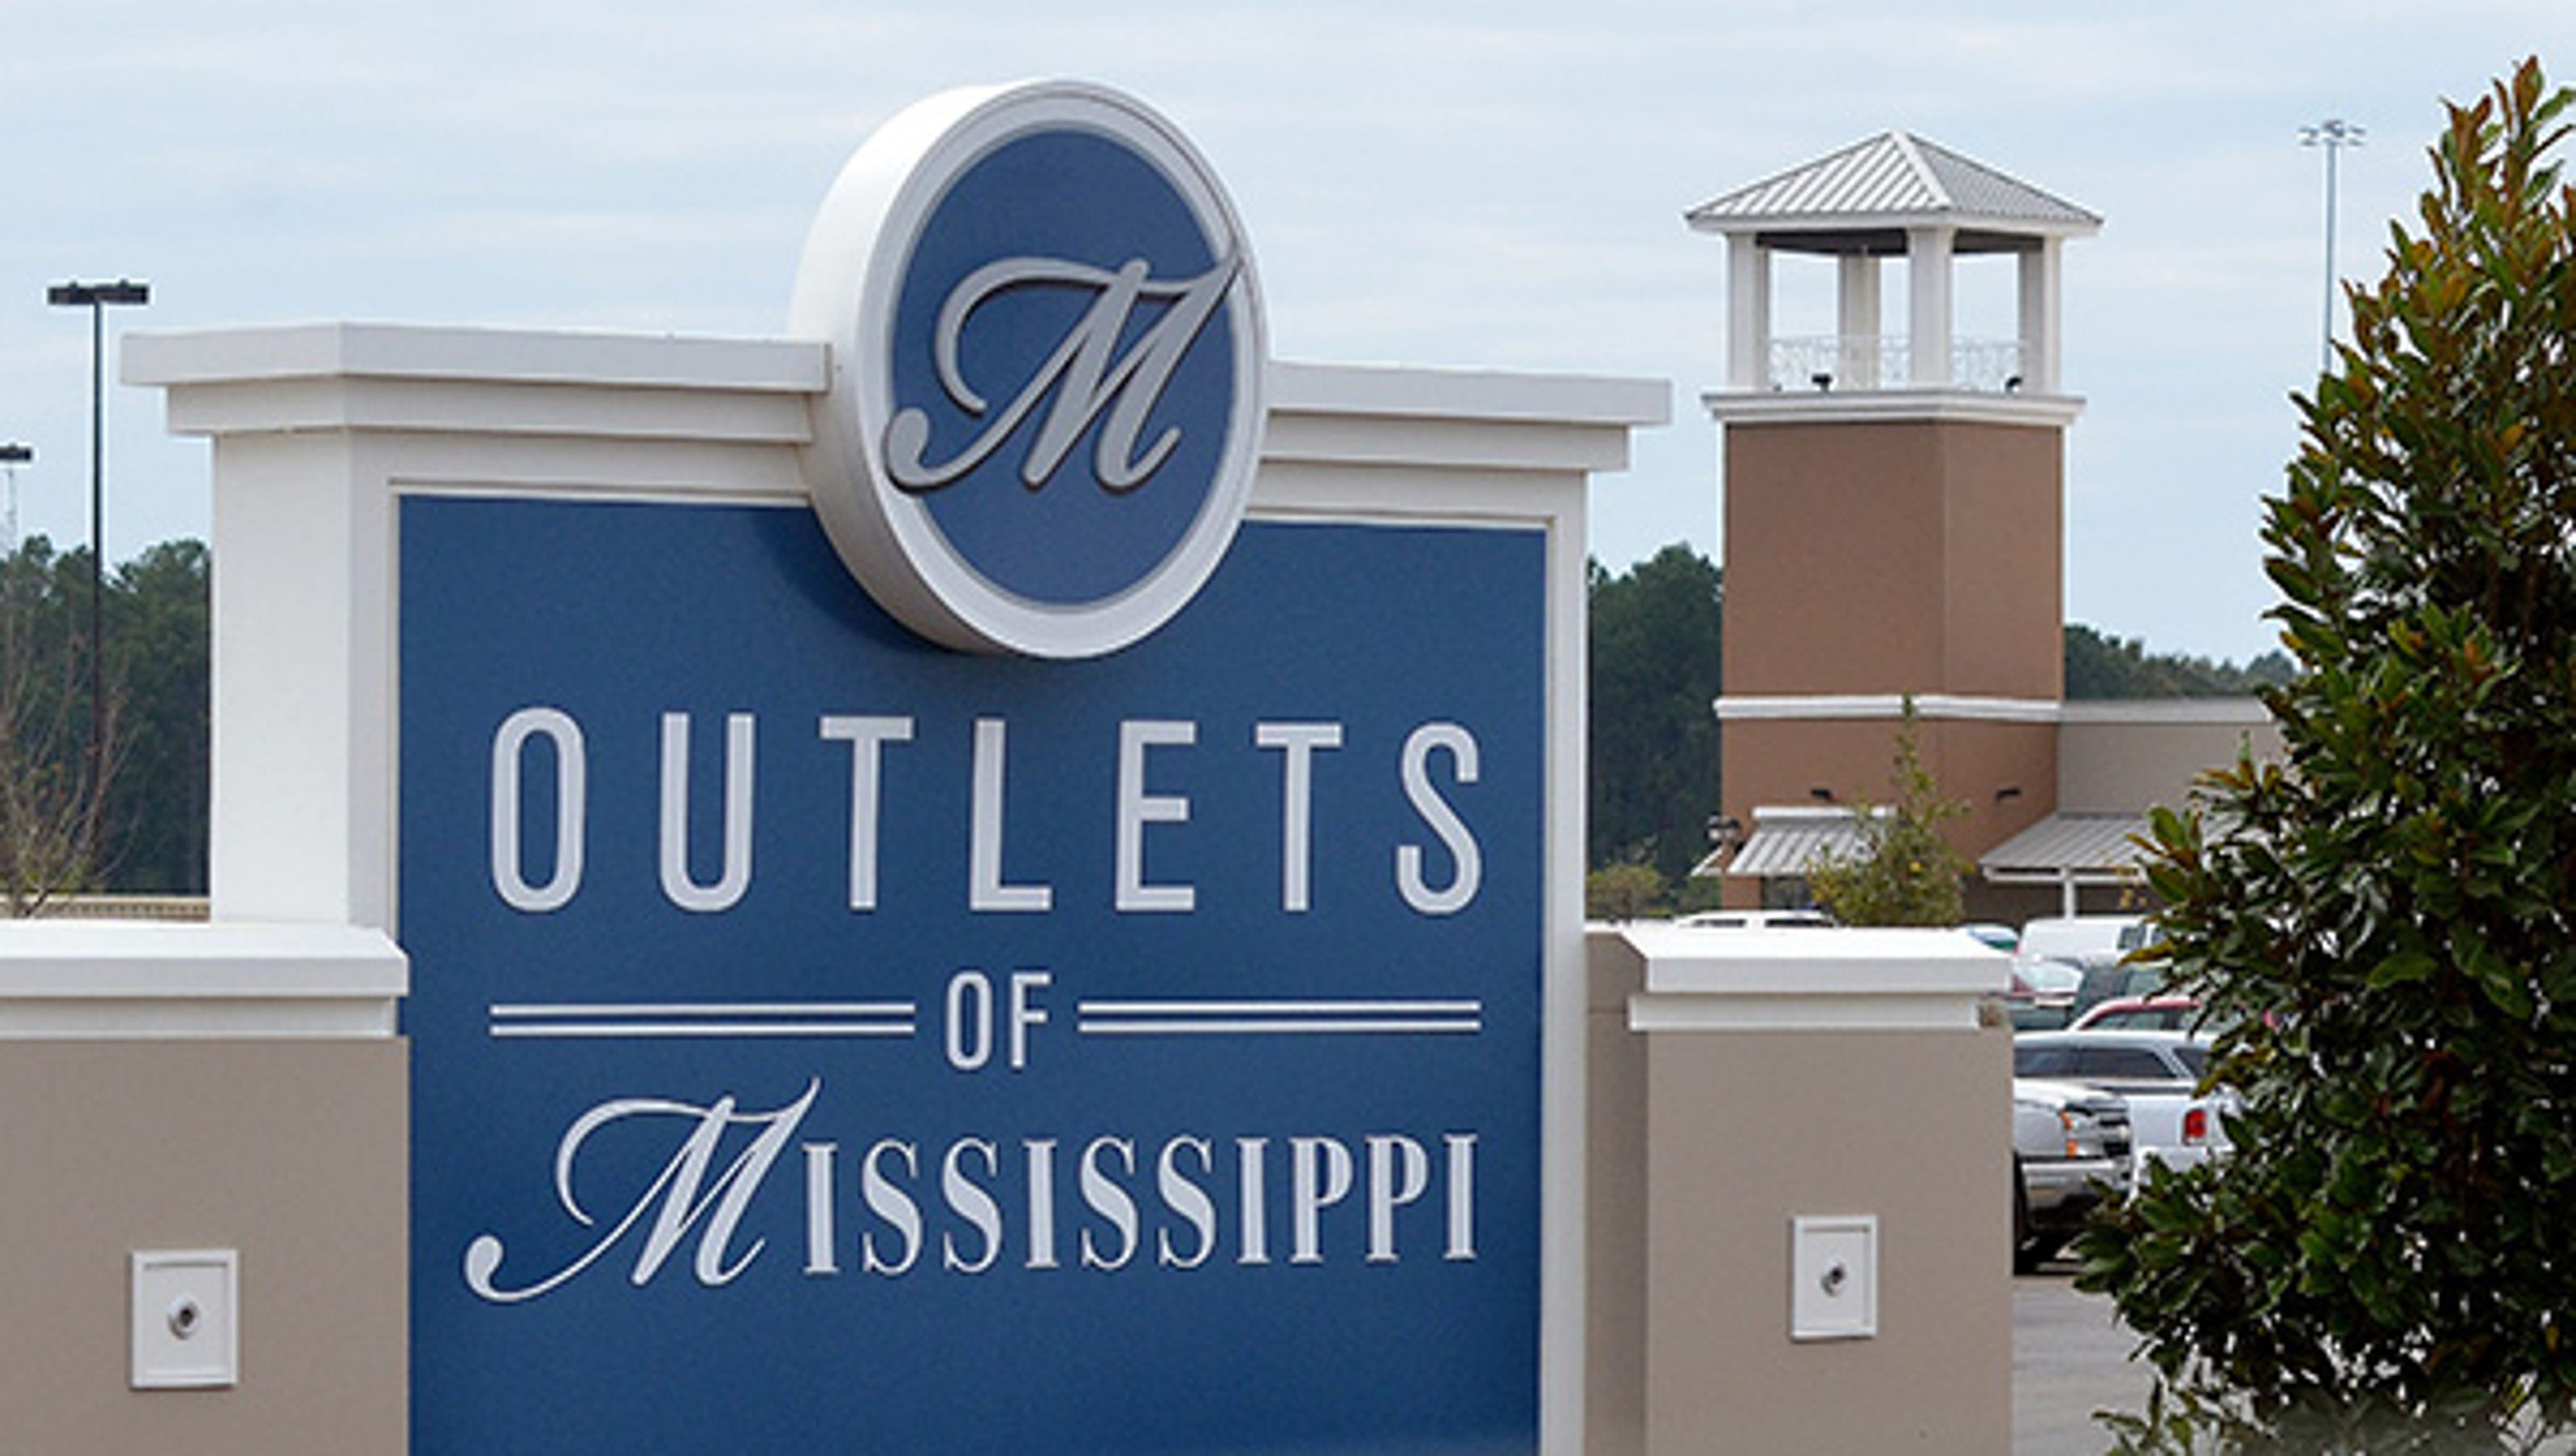 Be the first to find out about exclusive deals and events at Outlets of Mississippi.